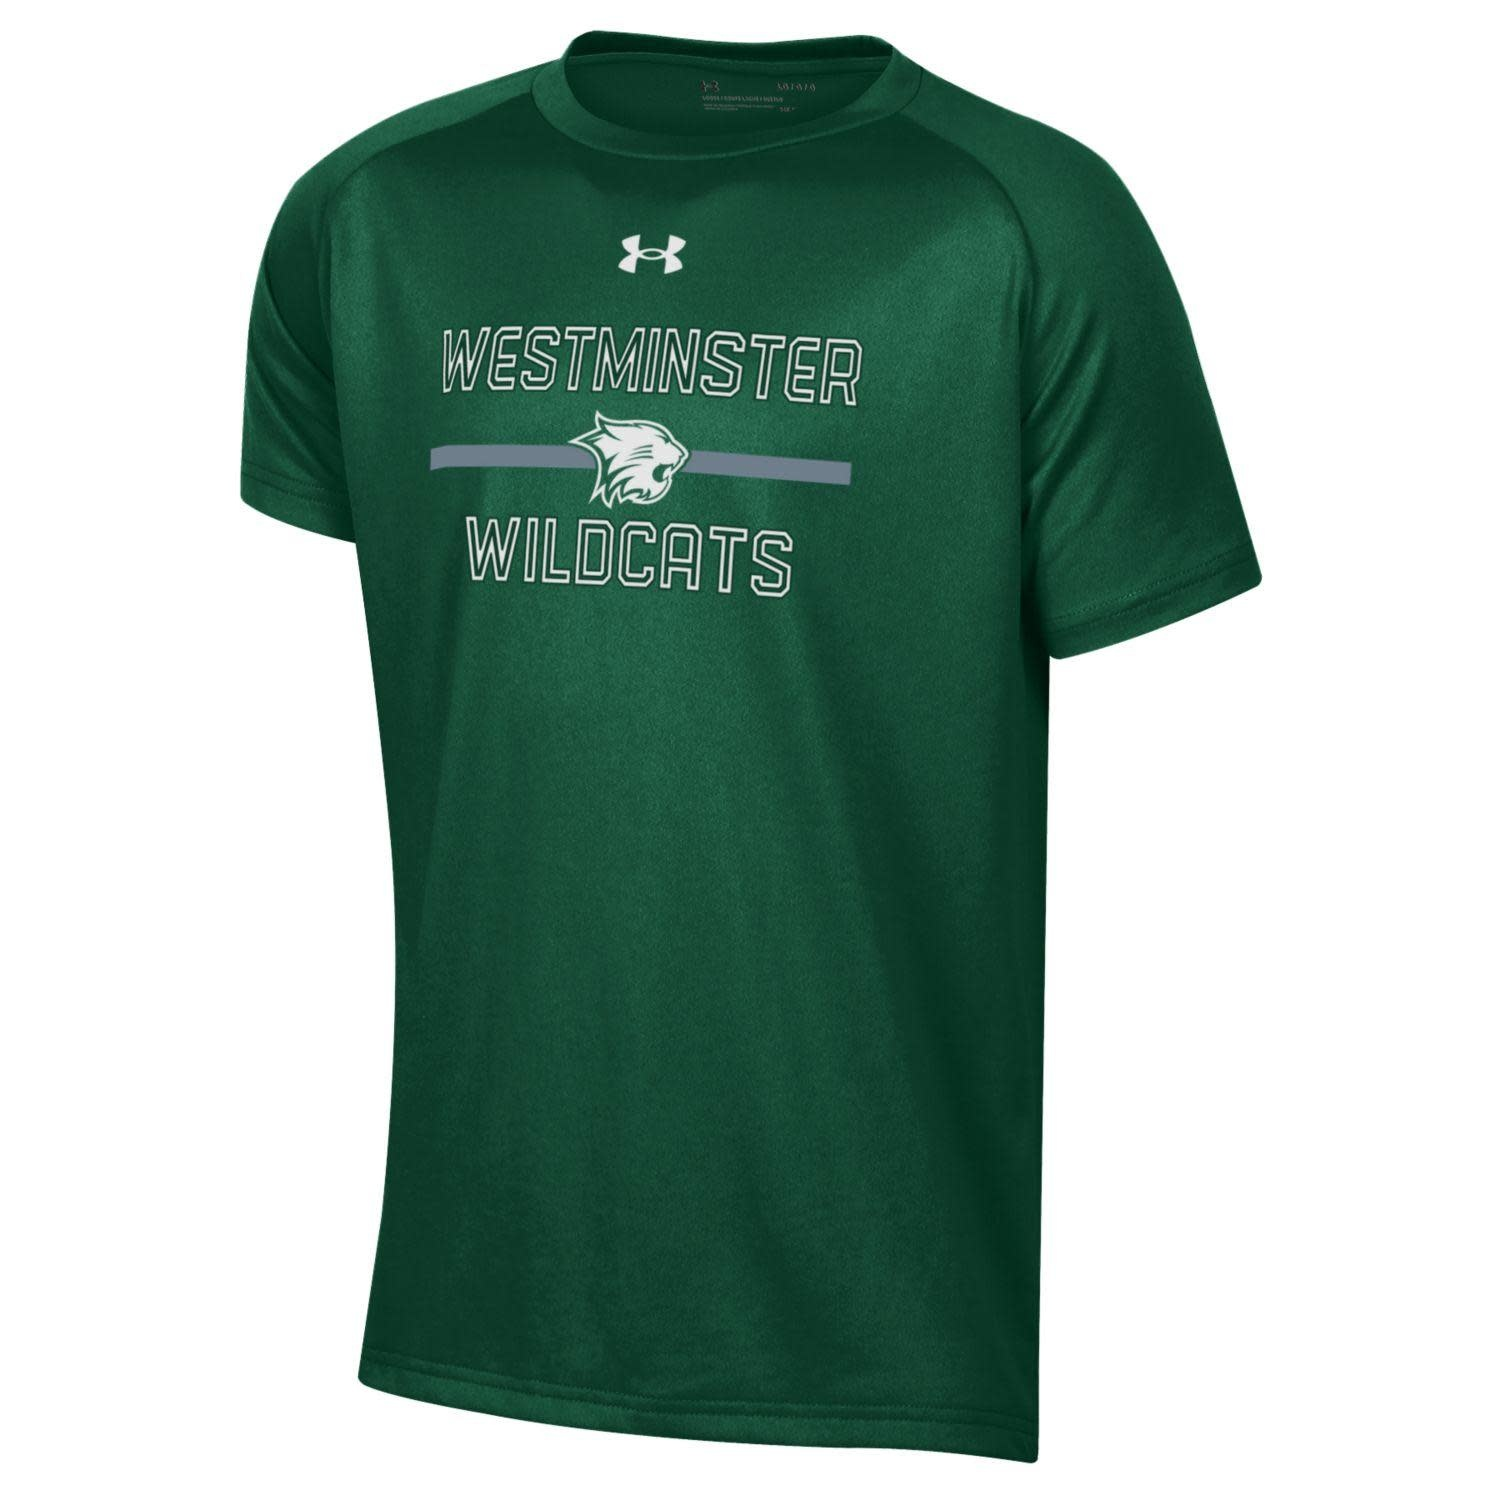 Under Armour T: Boys Tech SS - Mascot on Bar over Westminster